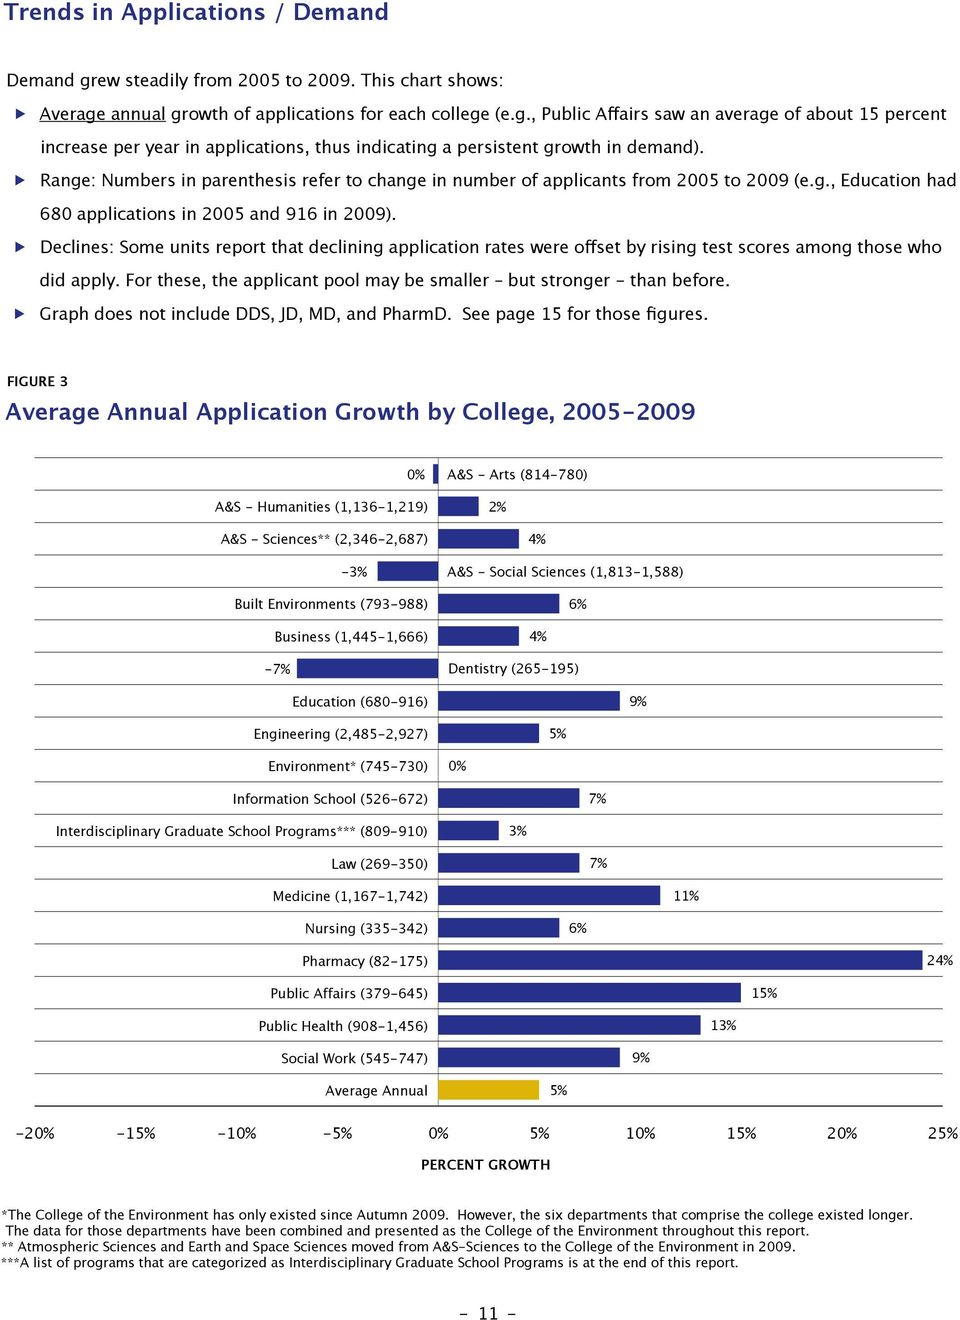 Declines: Some units report that declining application rates were oset by rising test scores among those who did apply. For these, the applicant pool may be smaller but stronger - than before.